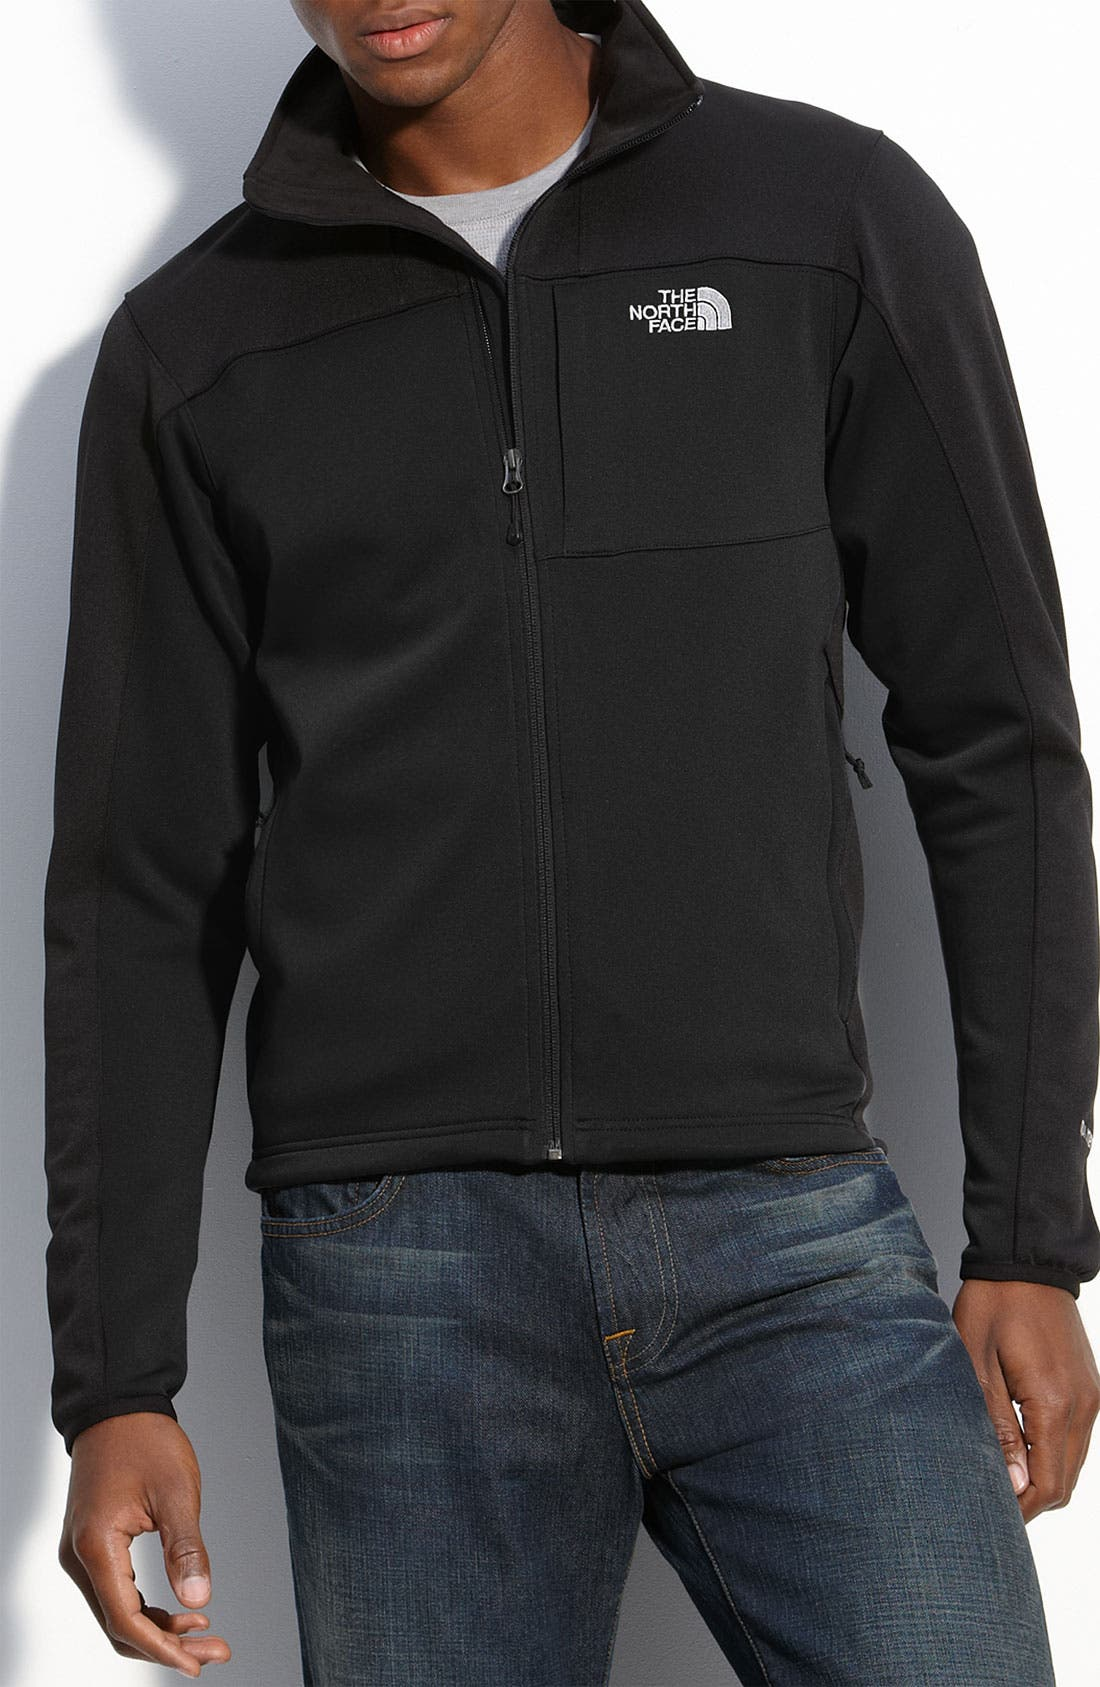 Alternate Image 1 Selected - The North Face 'Momentum' Performance Jacket